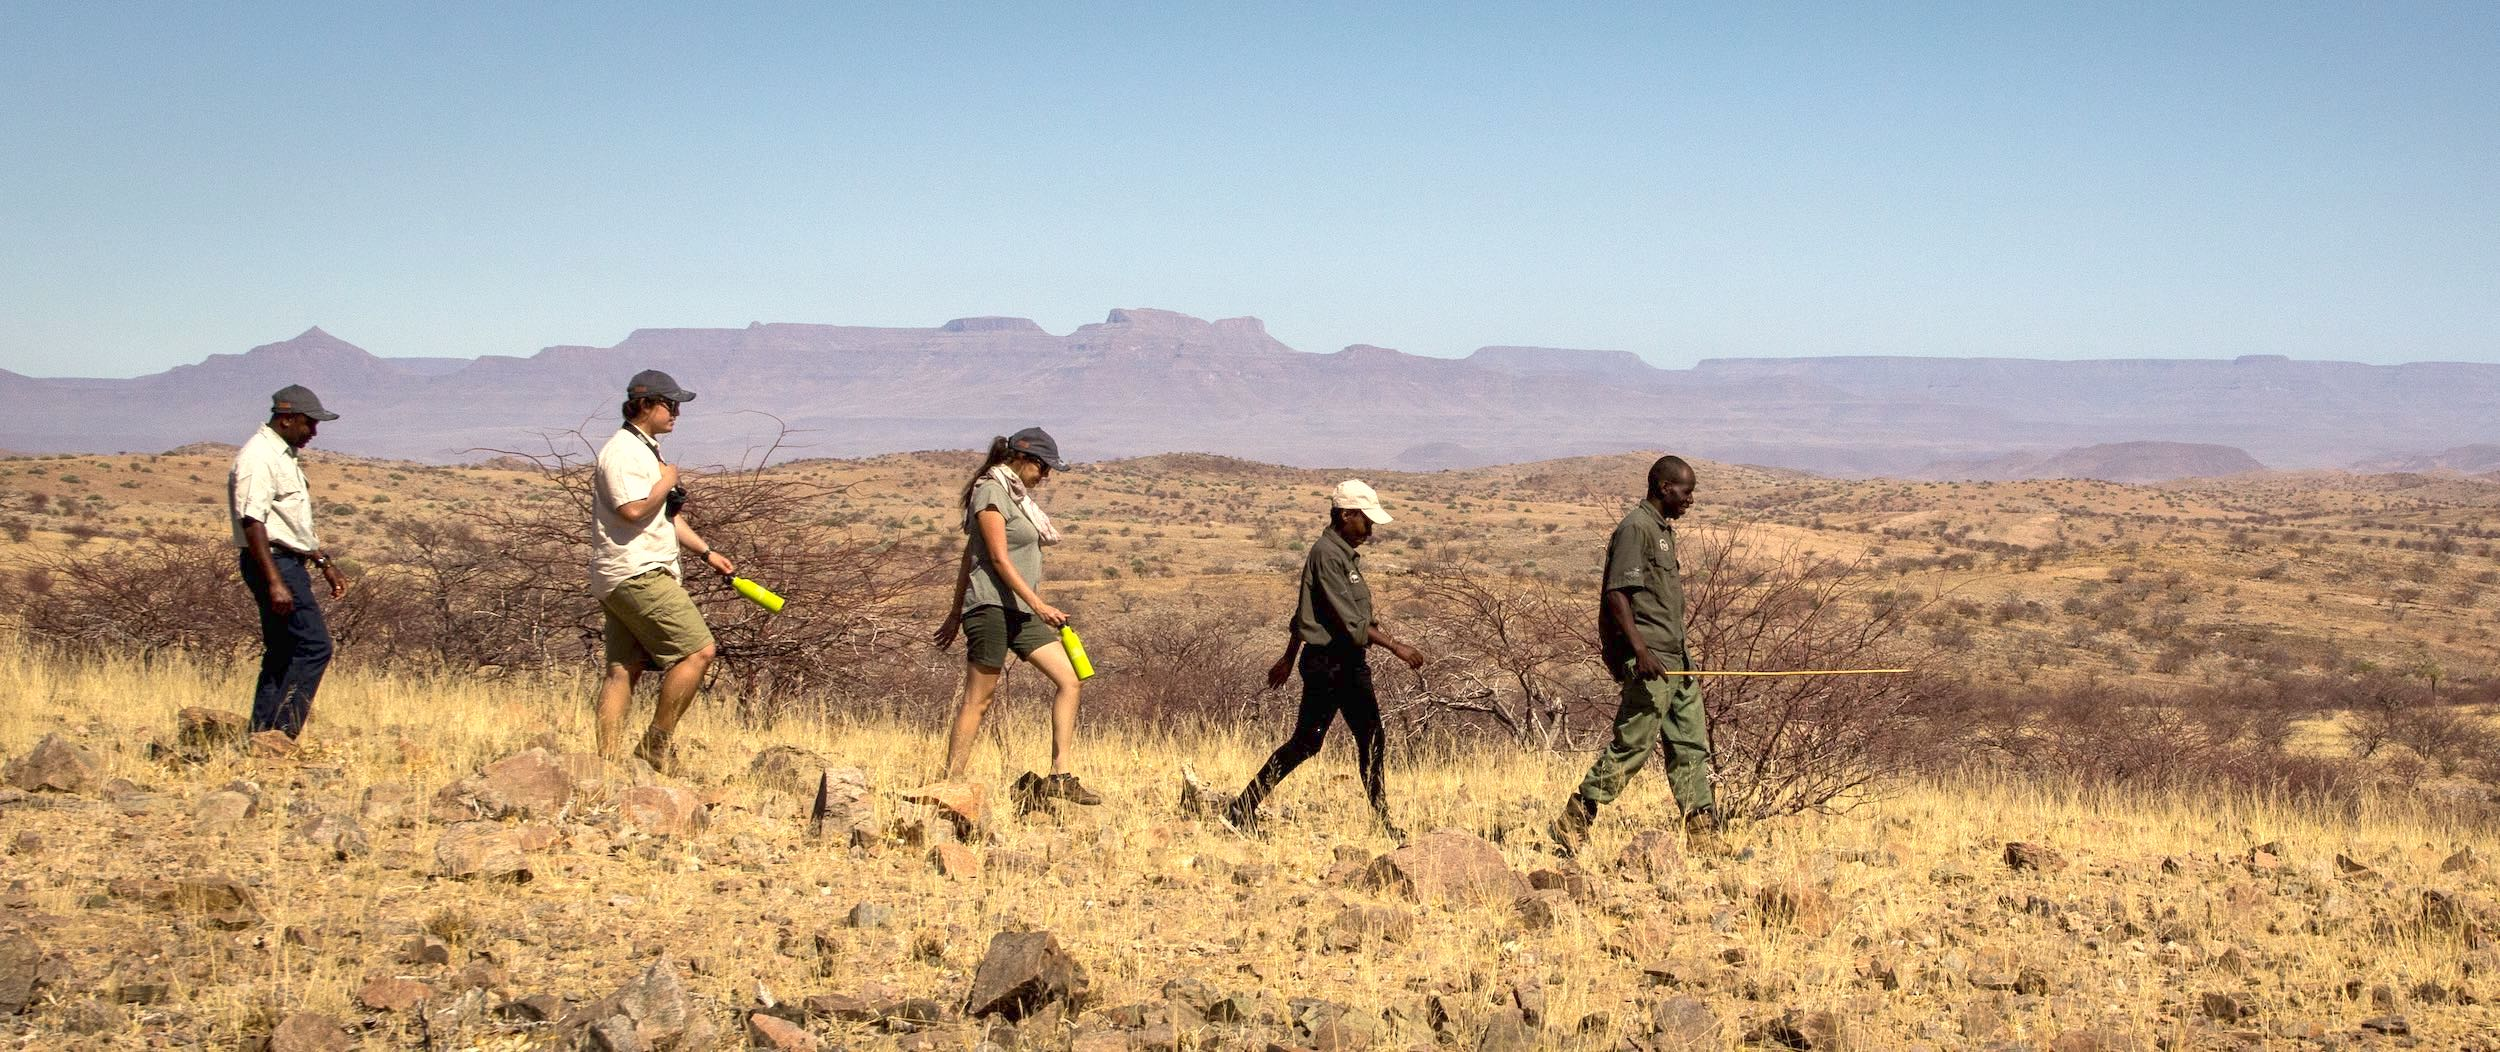 A guide leads a group of tourists on a trek across the stunning scenary of north-western Namibia.